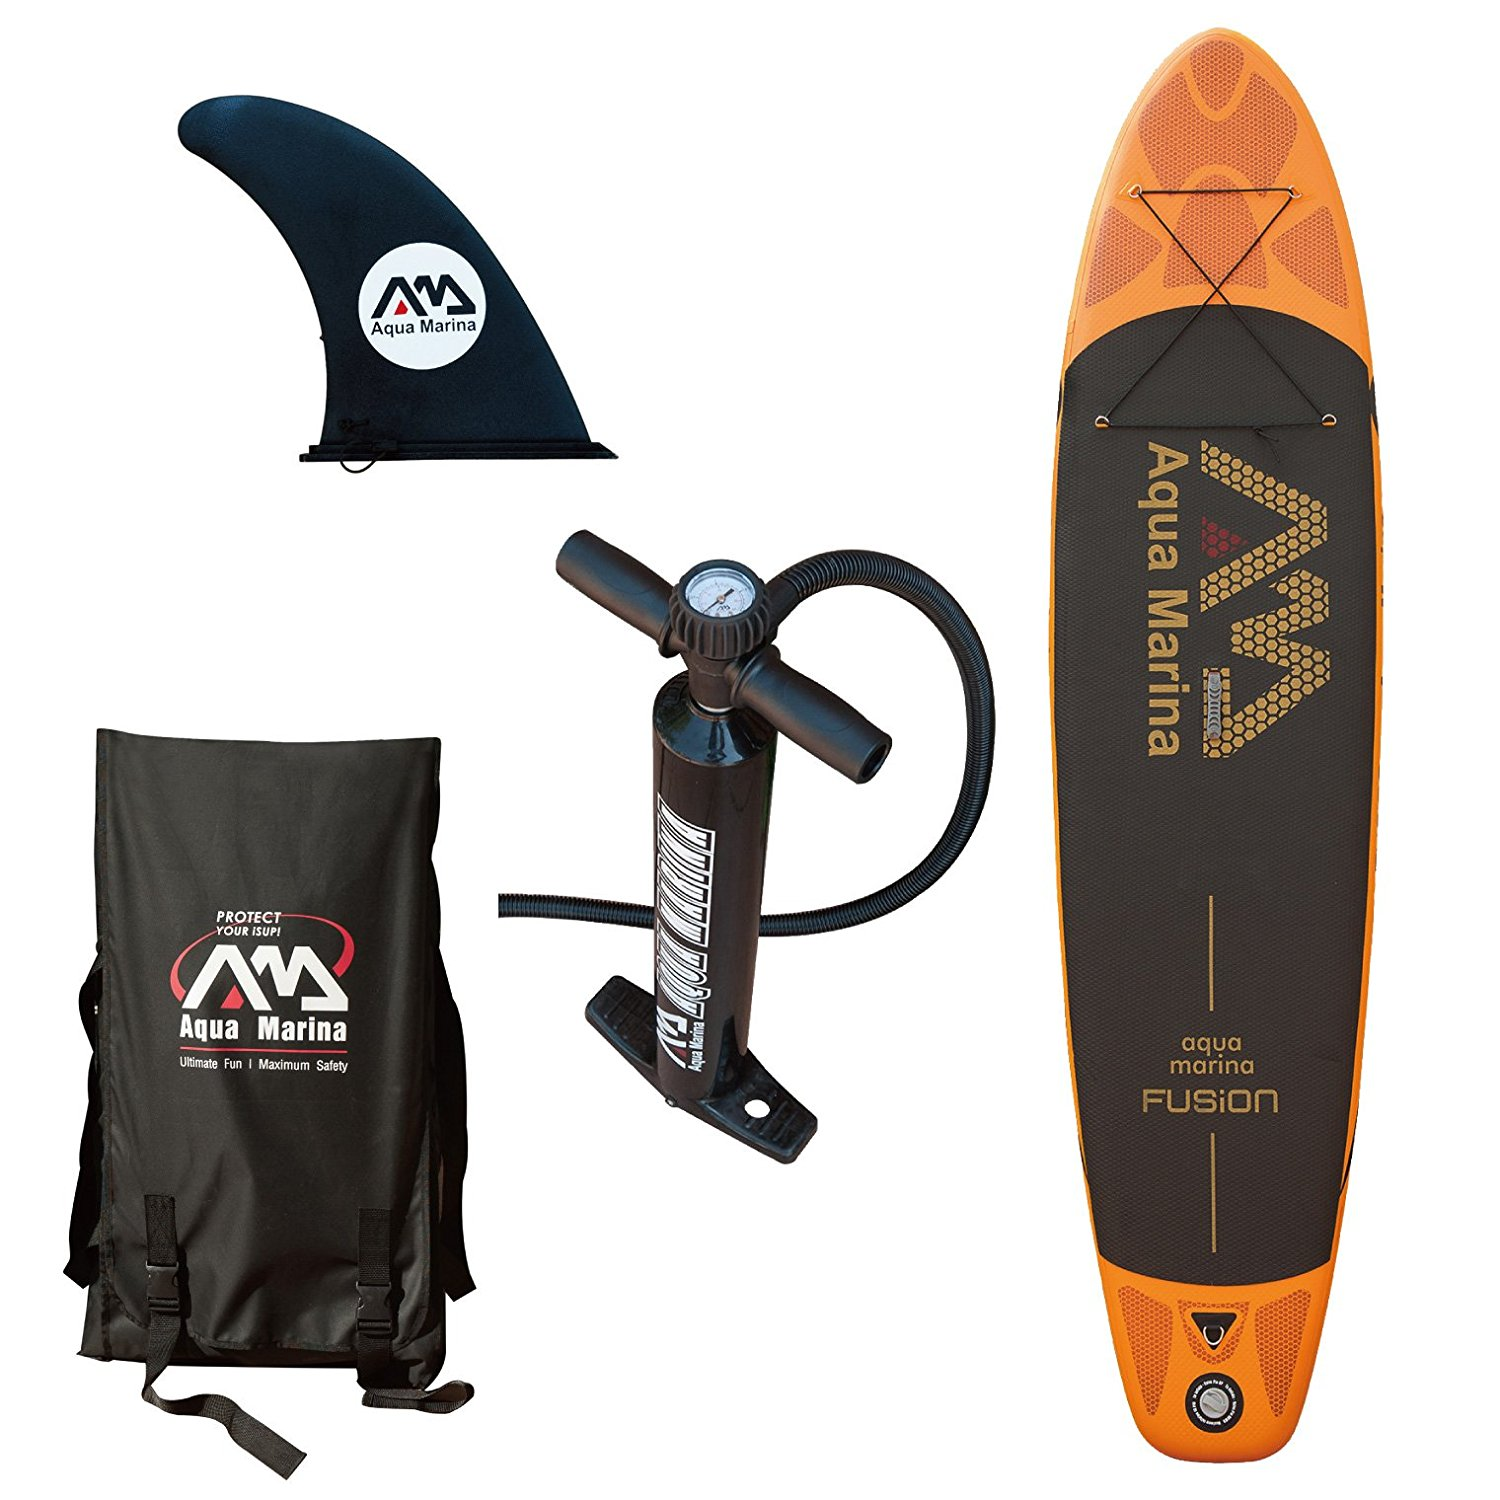 Aqua Marina Fusion Stand Up Paddle Board by Aqua Marina